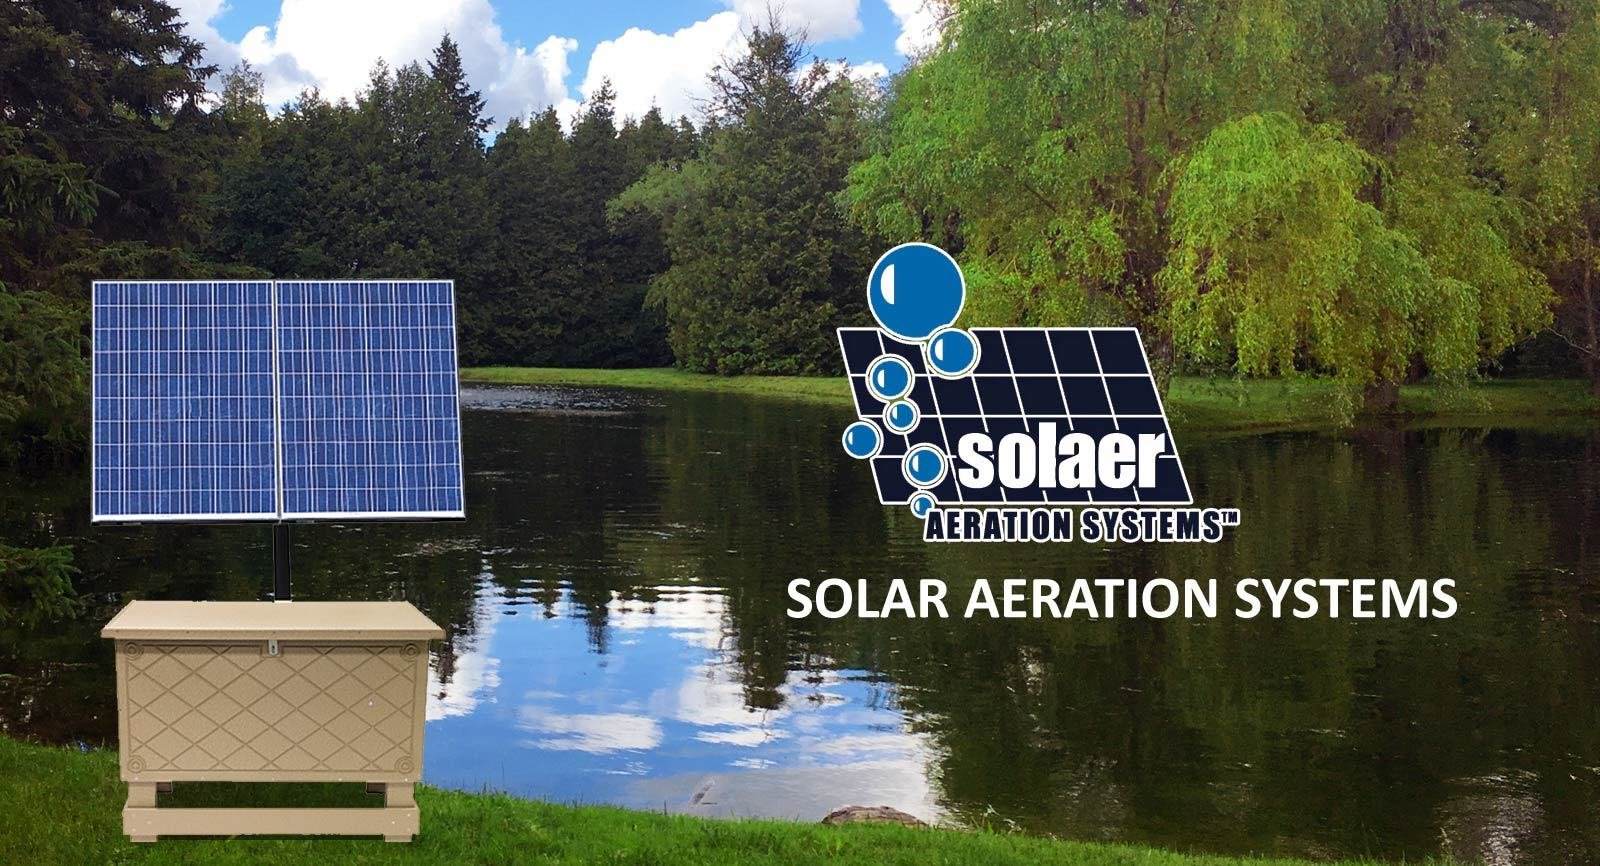 Now you can improve water quality and clarity in large ponds without having  electricity near by. We offer solar aeration systems for ponds up to 4  acres.